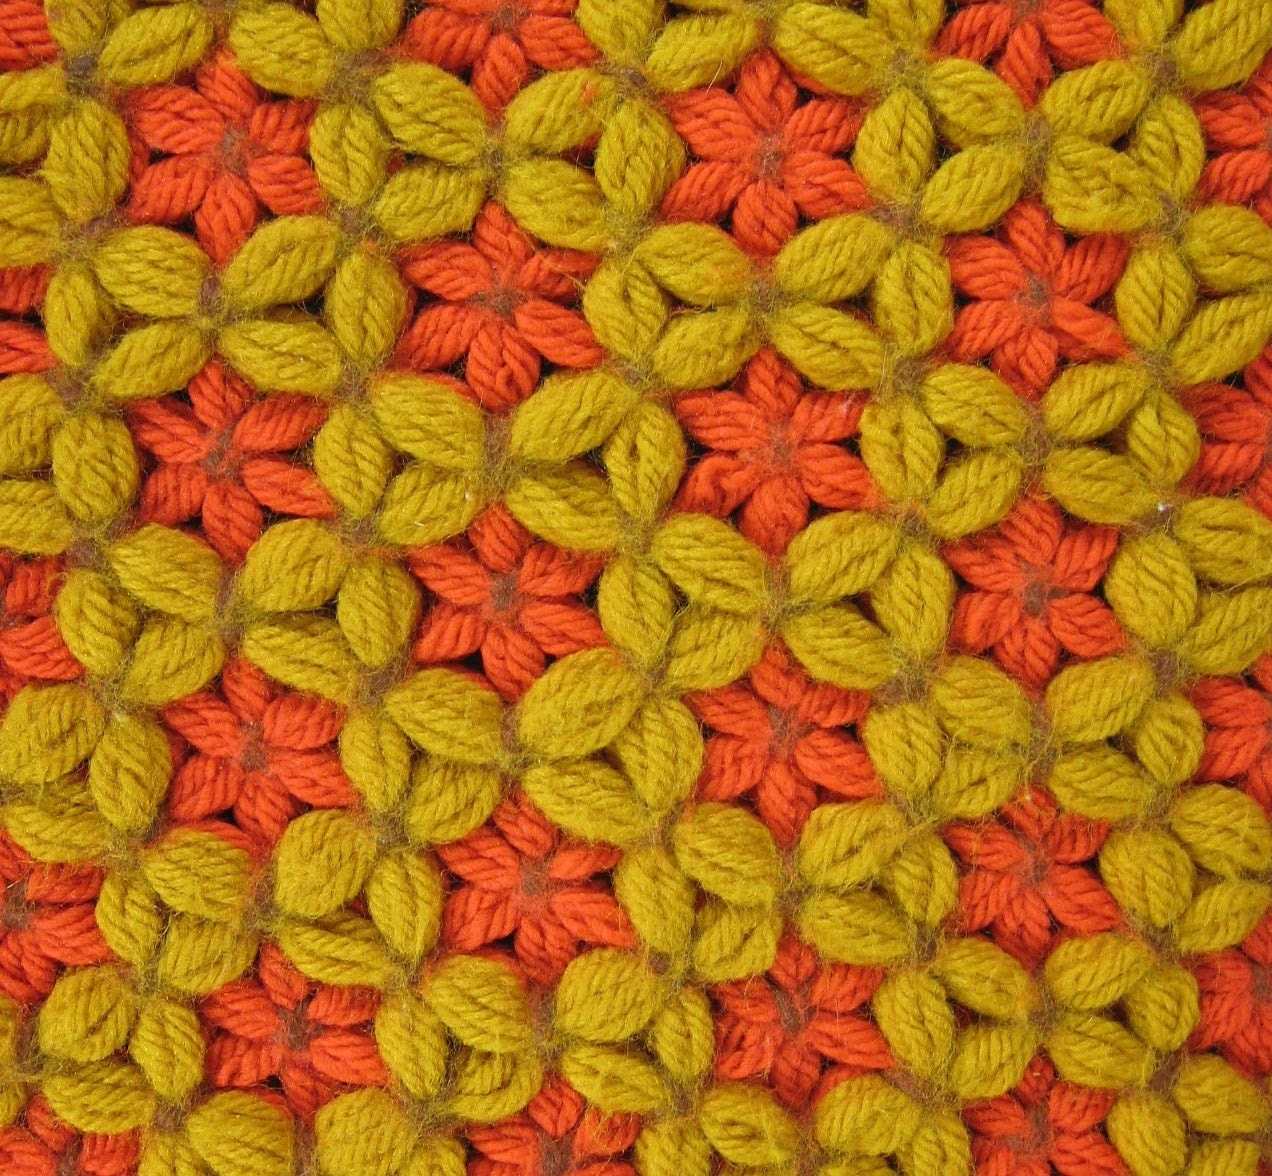 4 VINTAGE Orange and Yellow Crochet Placemats